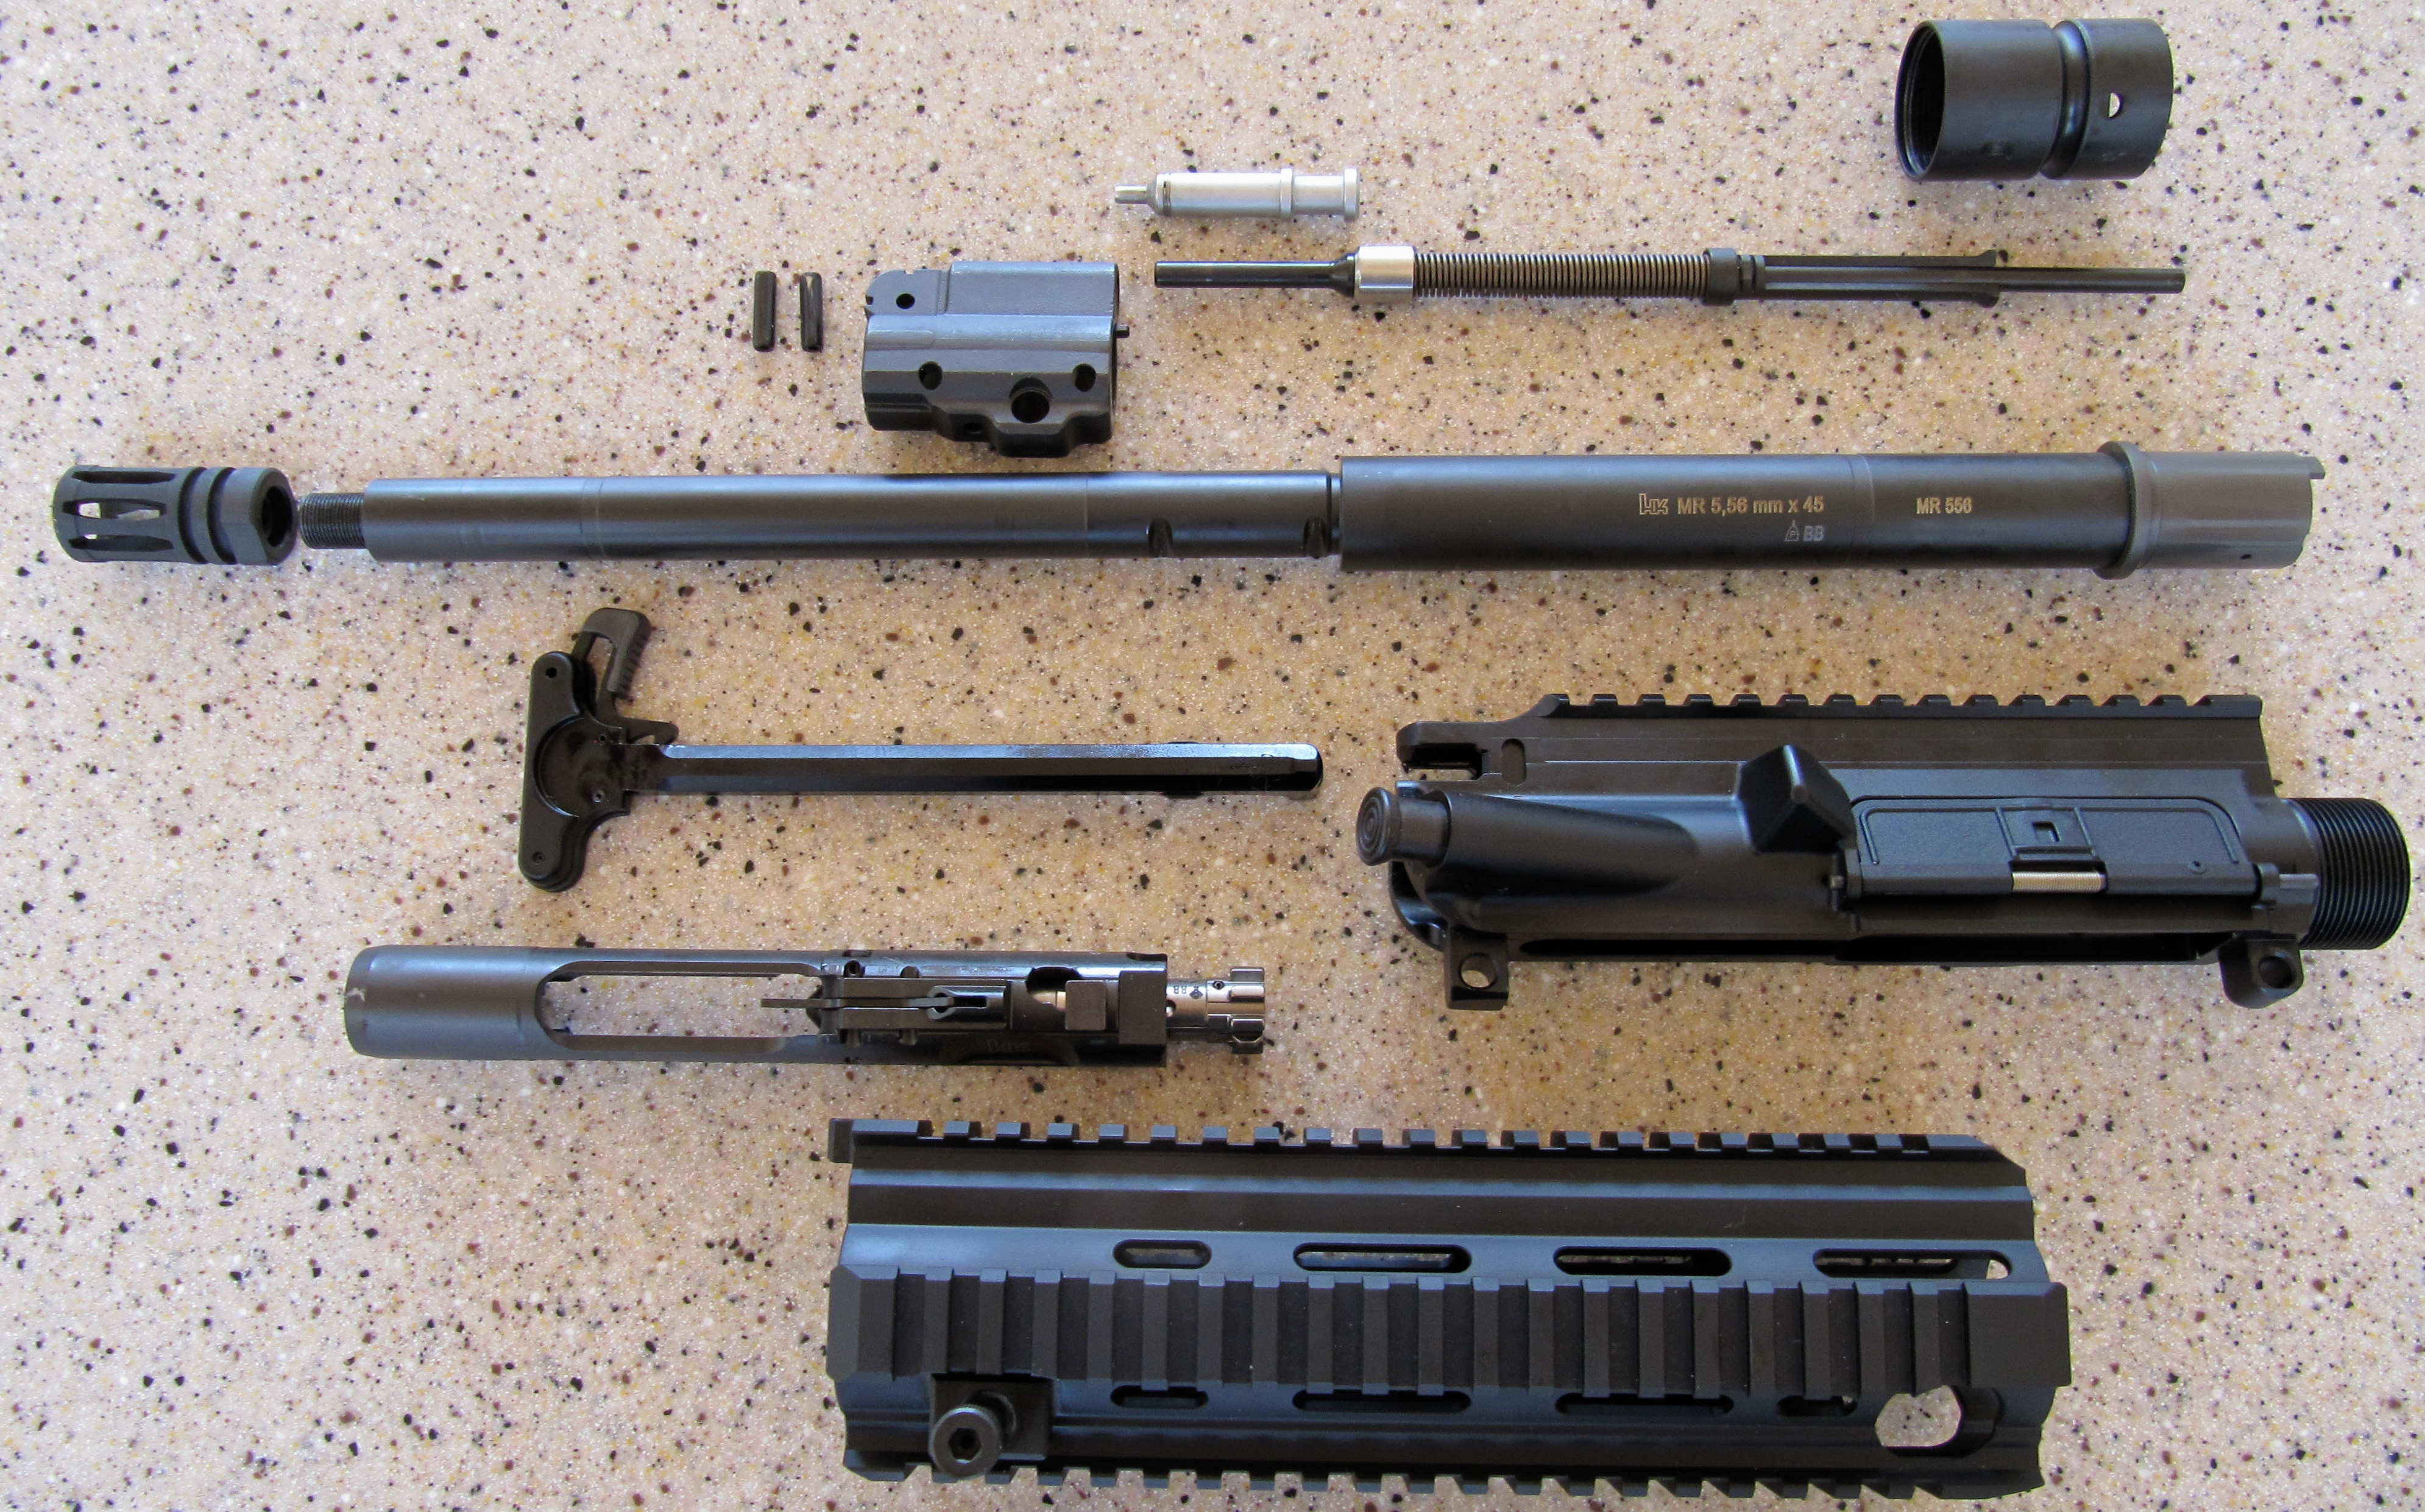 WTS: Heckler & Koch MR556-A1 Upper Receiver Parts Kit - Attachments